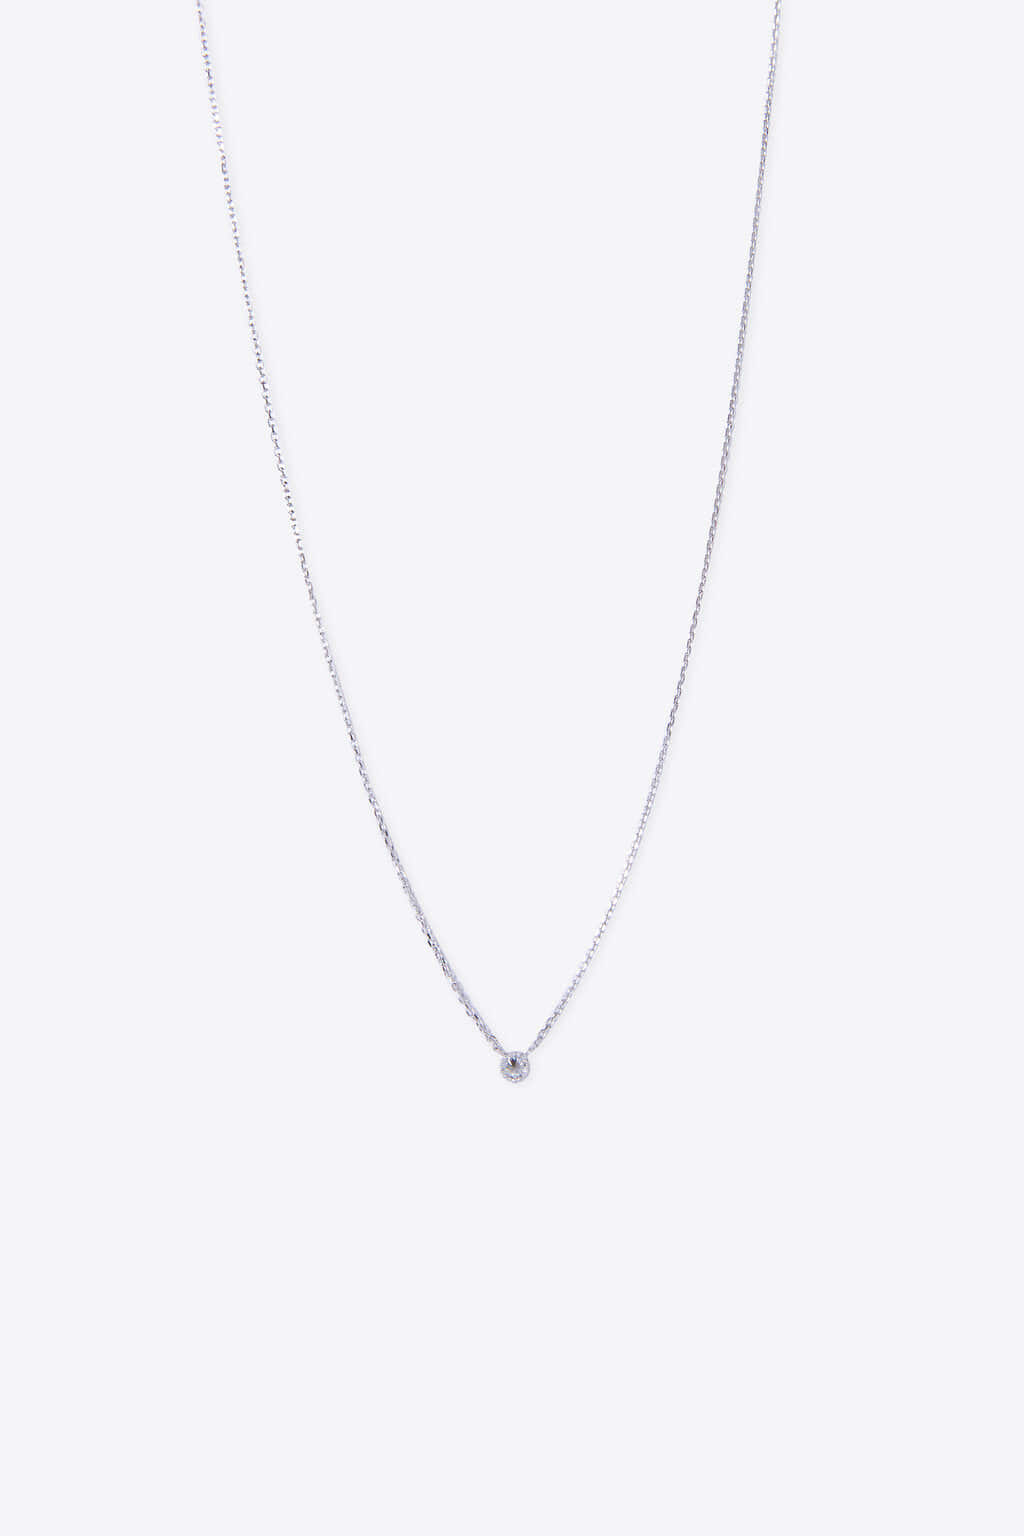 Necklace H057 Silver 2